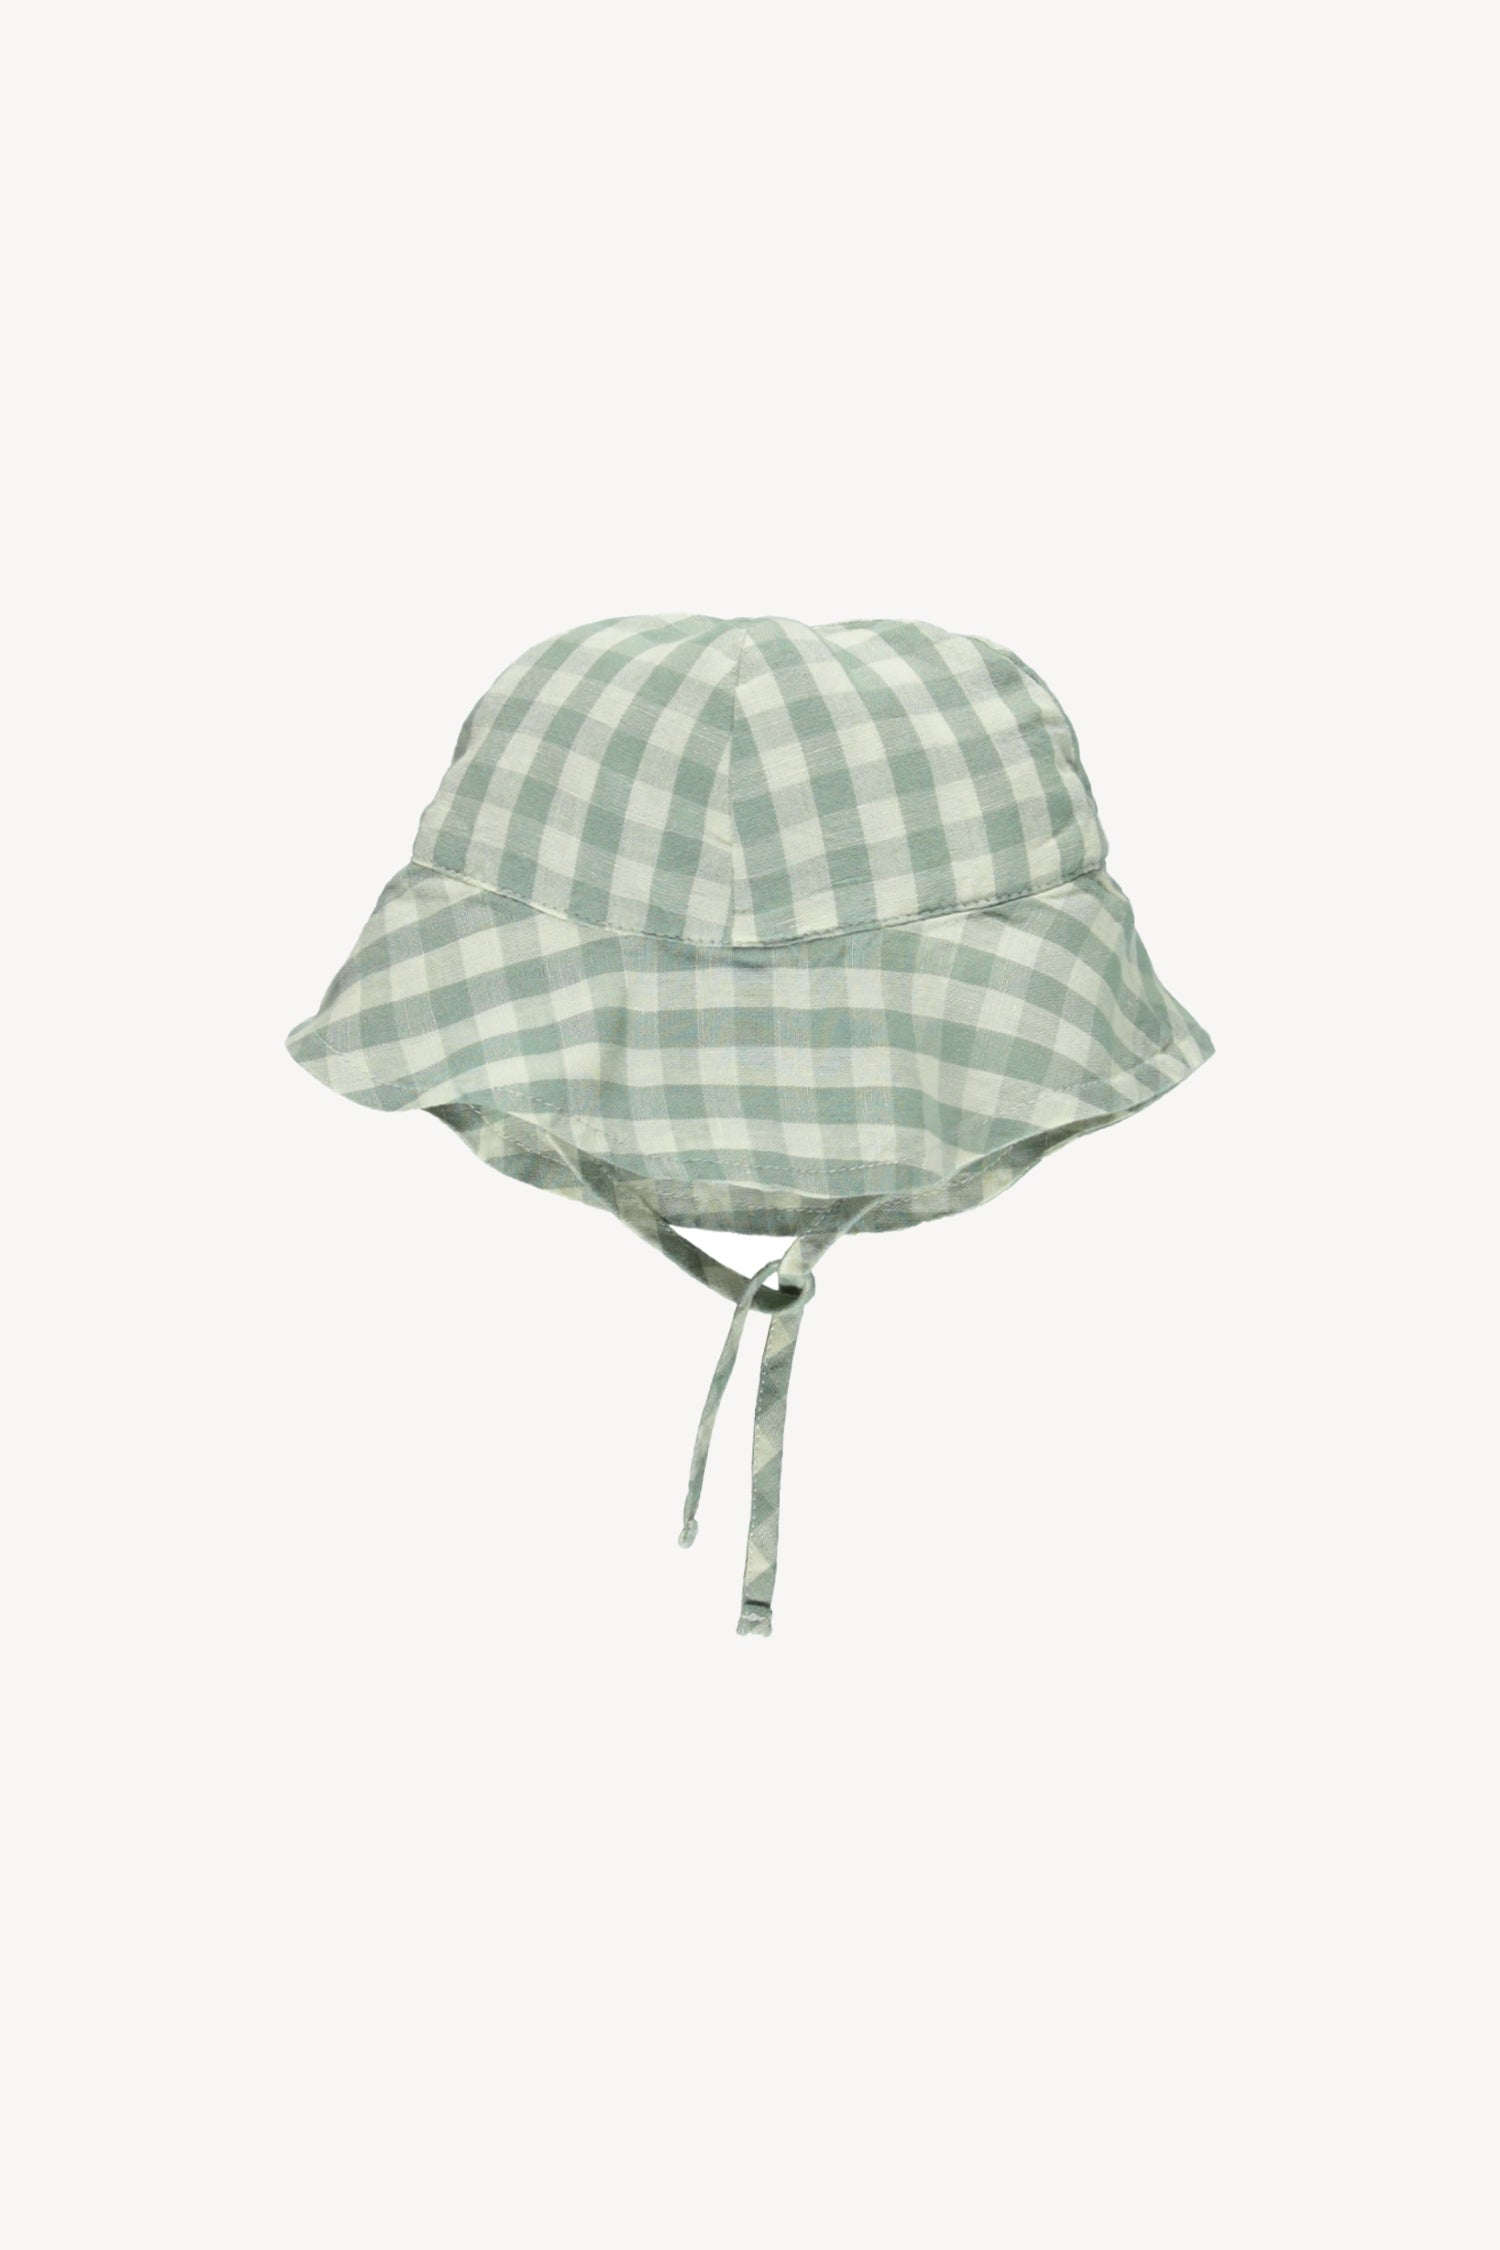 Fin and Vince - Sunhat (Pistachio Gingham) - Only 2/3